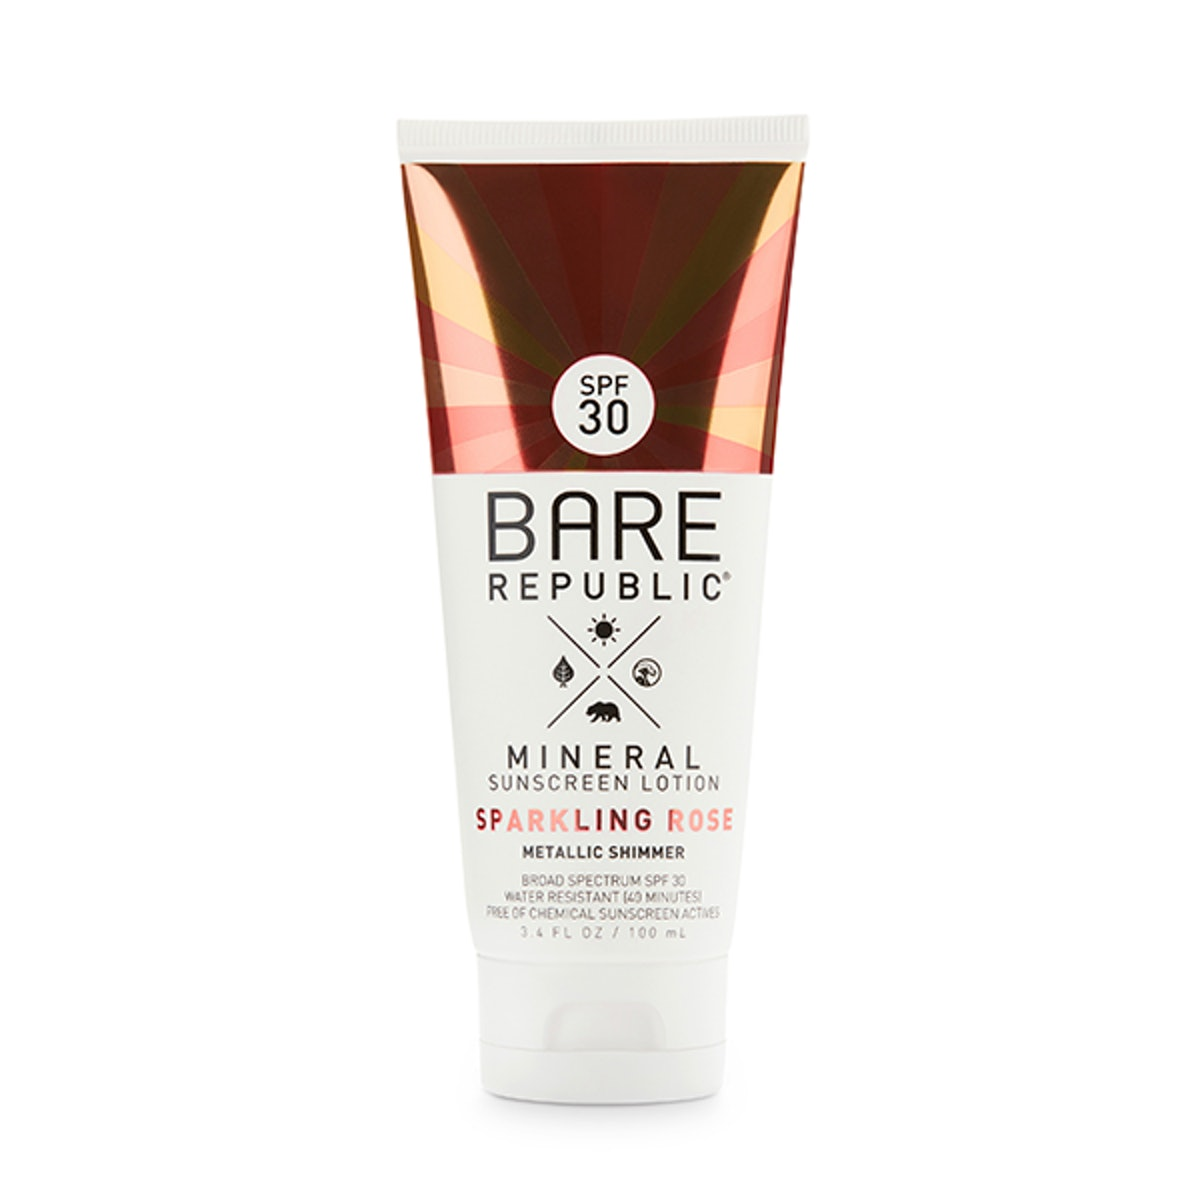 Bare Republic Mineral Shimmer Sunscreen Lotion in Sparkling Rose, SPF 30